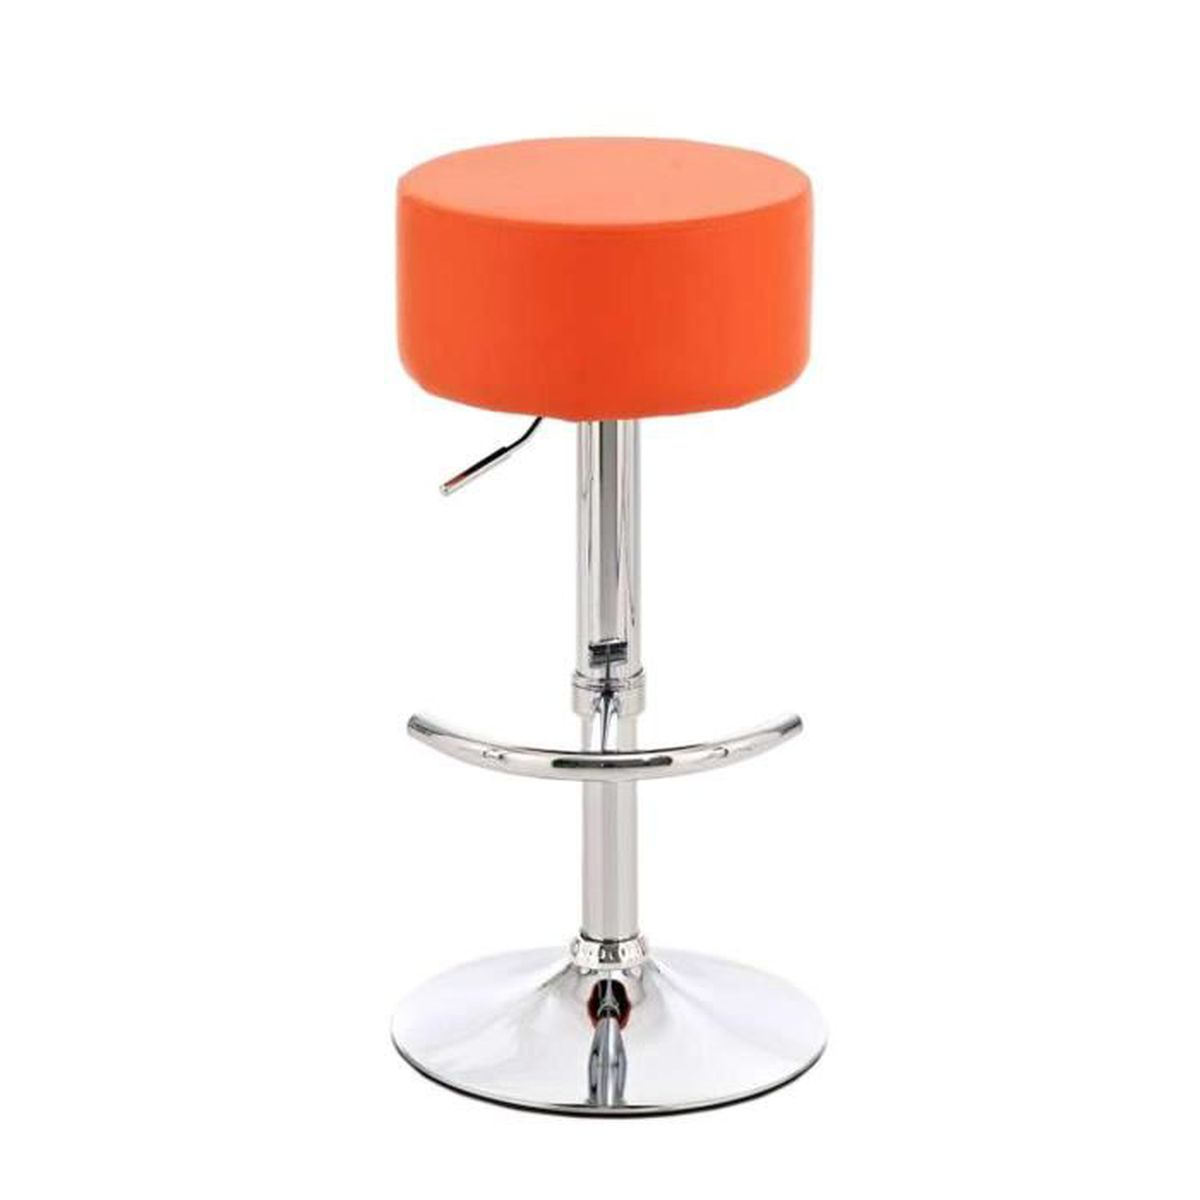 tabouret de bar avec si ge en similicuir coloris orange. Black Bedroom Furniture Sets. Home Design Ideas